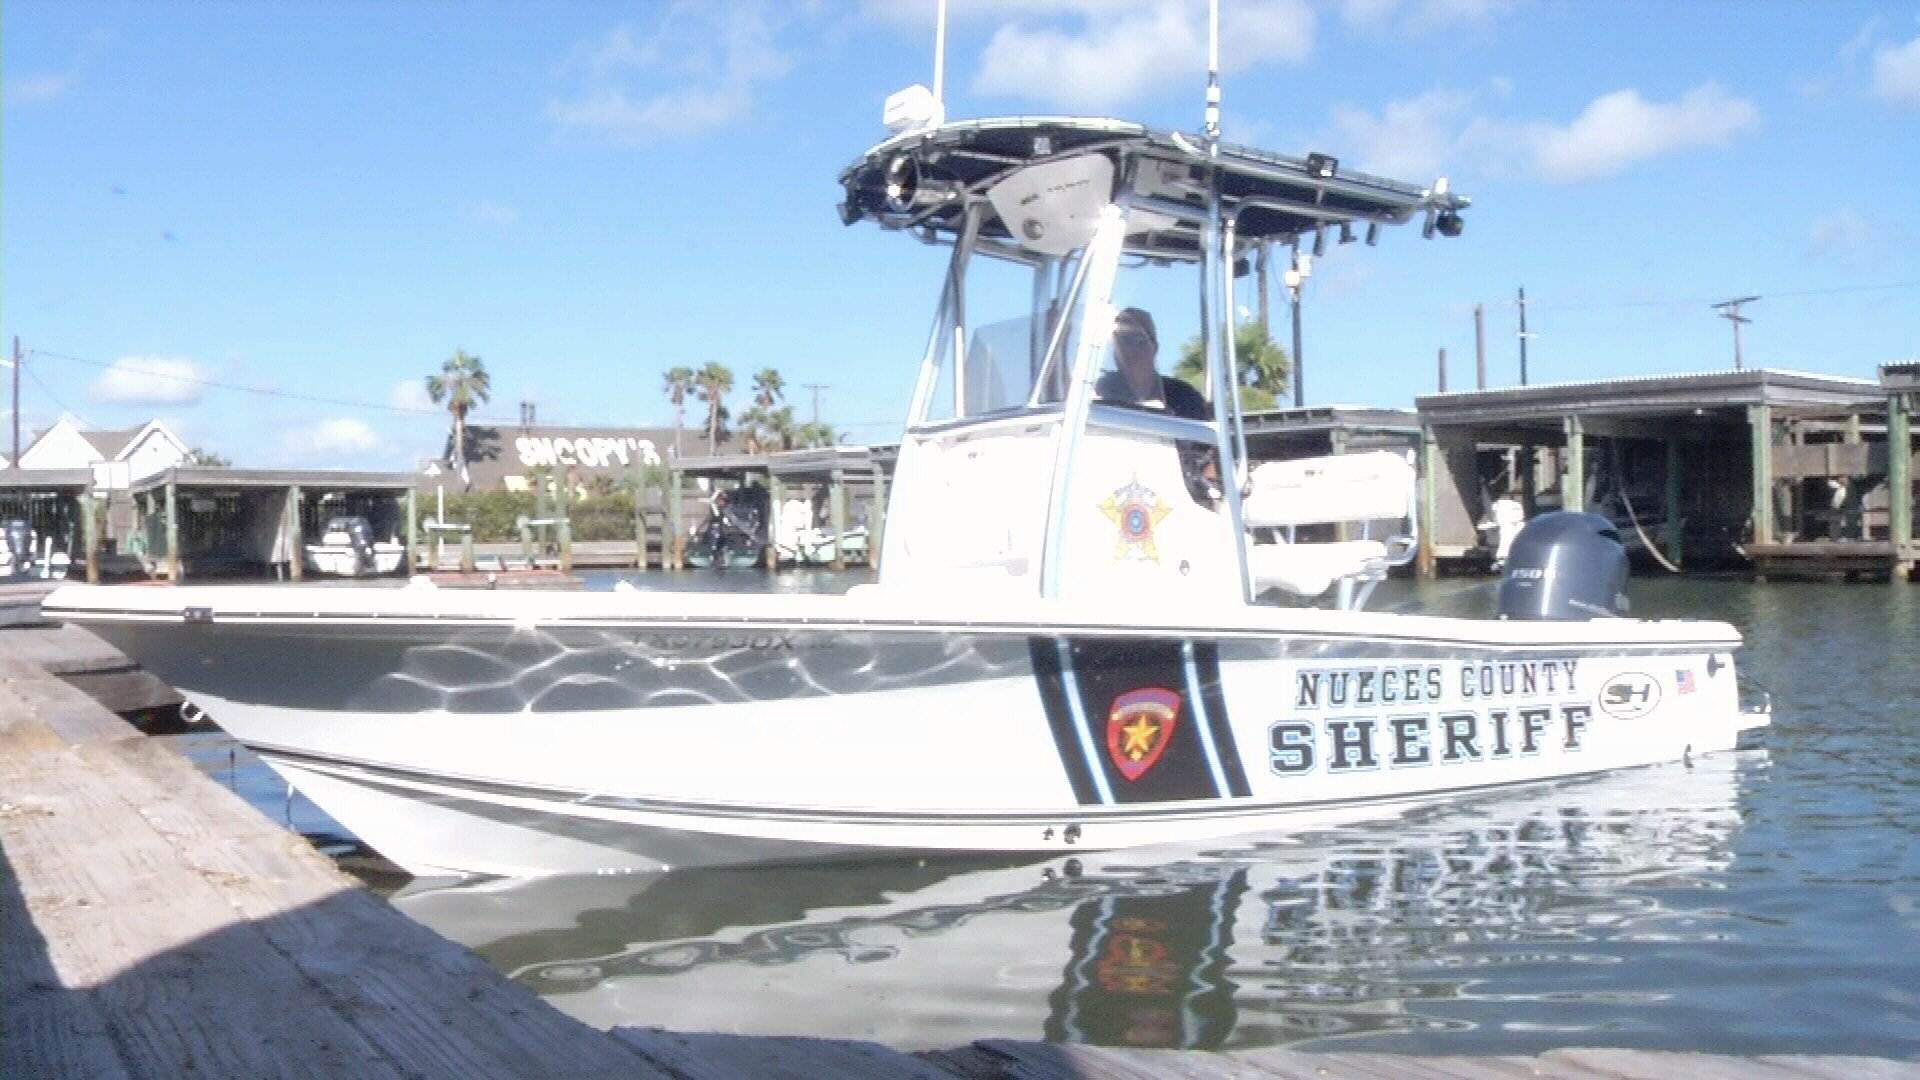 A new patrol boat owned by the Nueces County Sheriff's Department is patrolling waterways and canals on Padre Island.